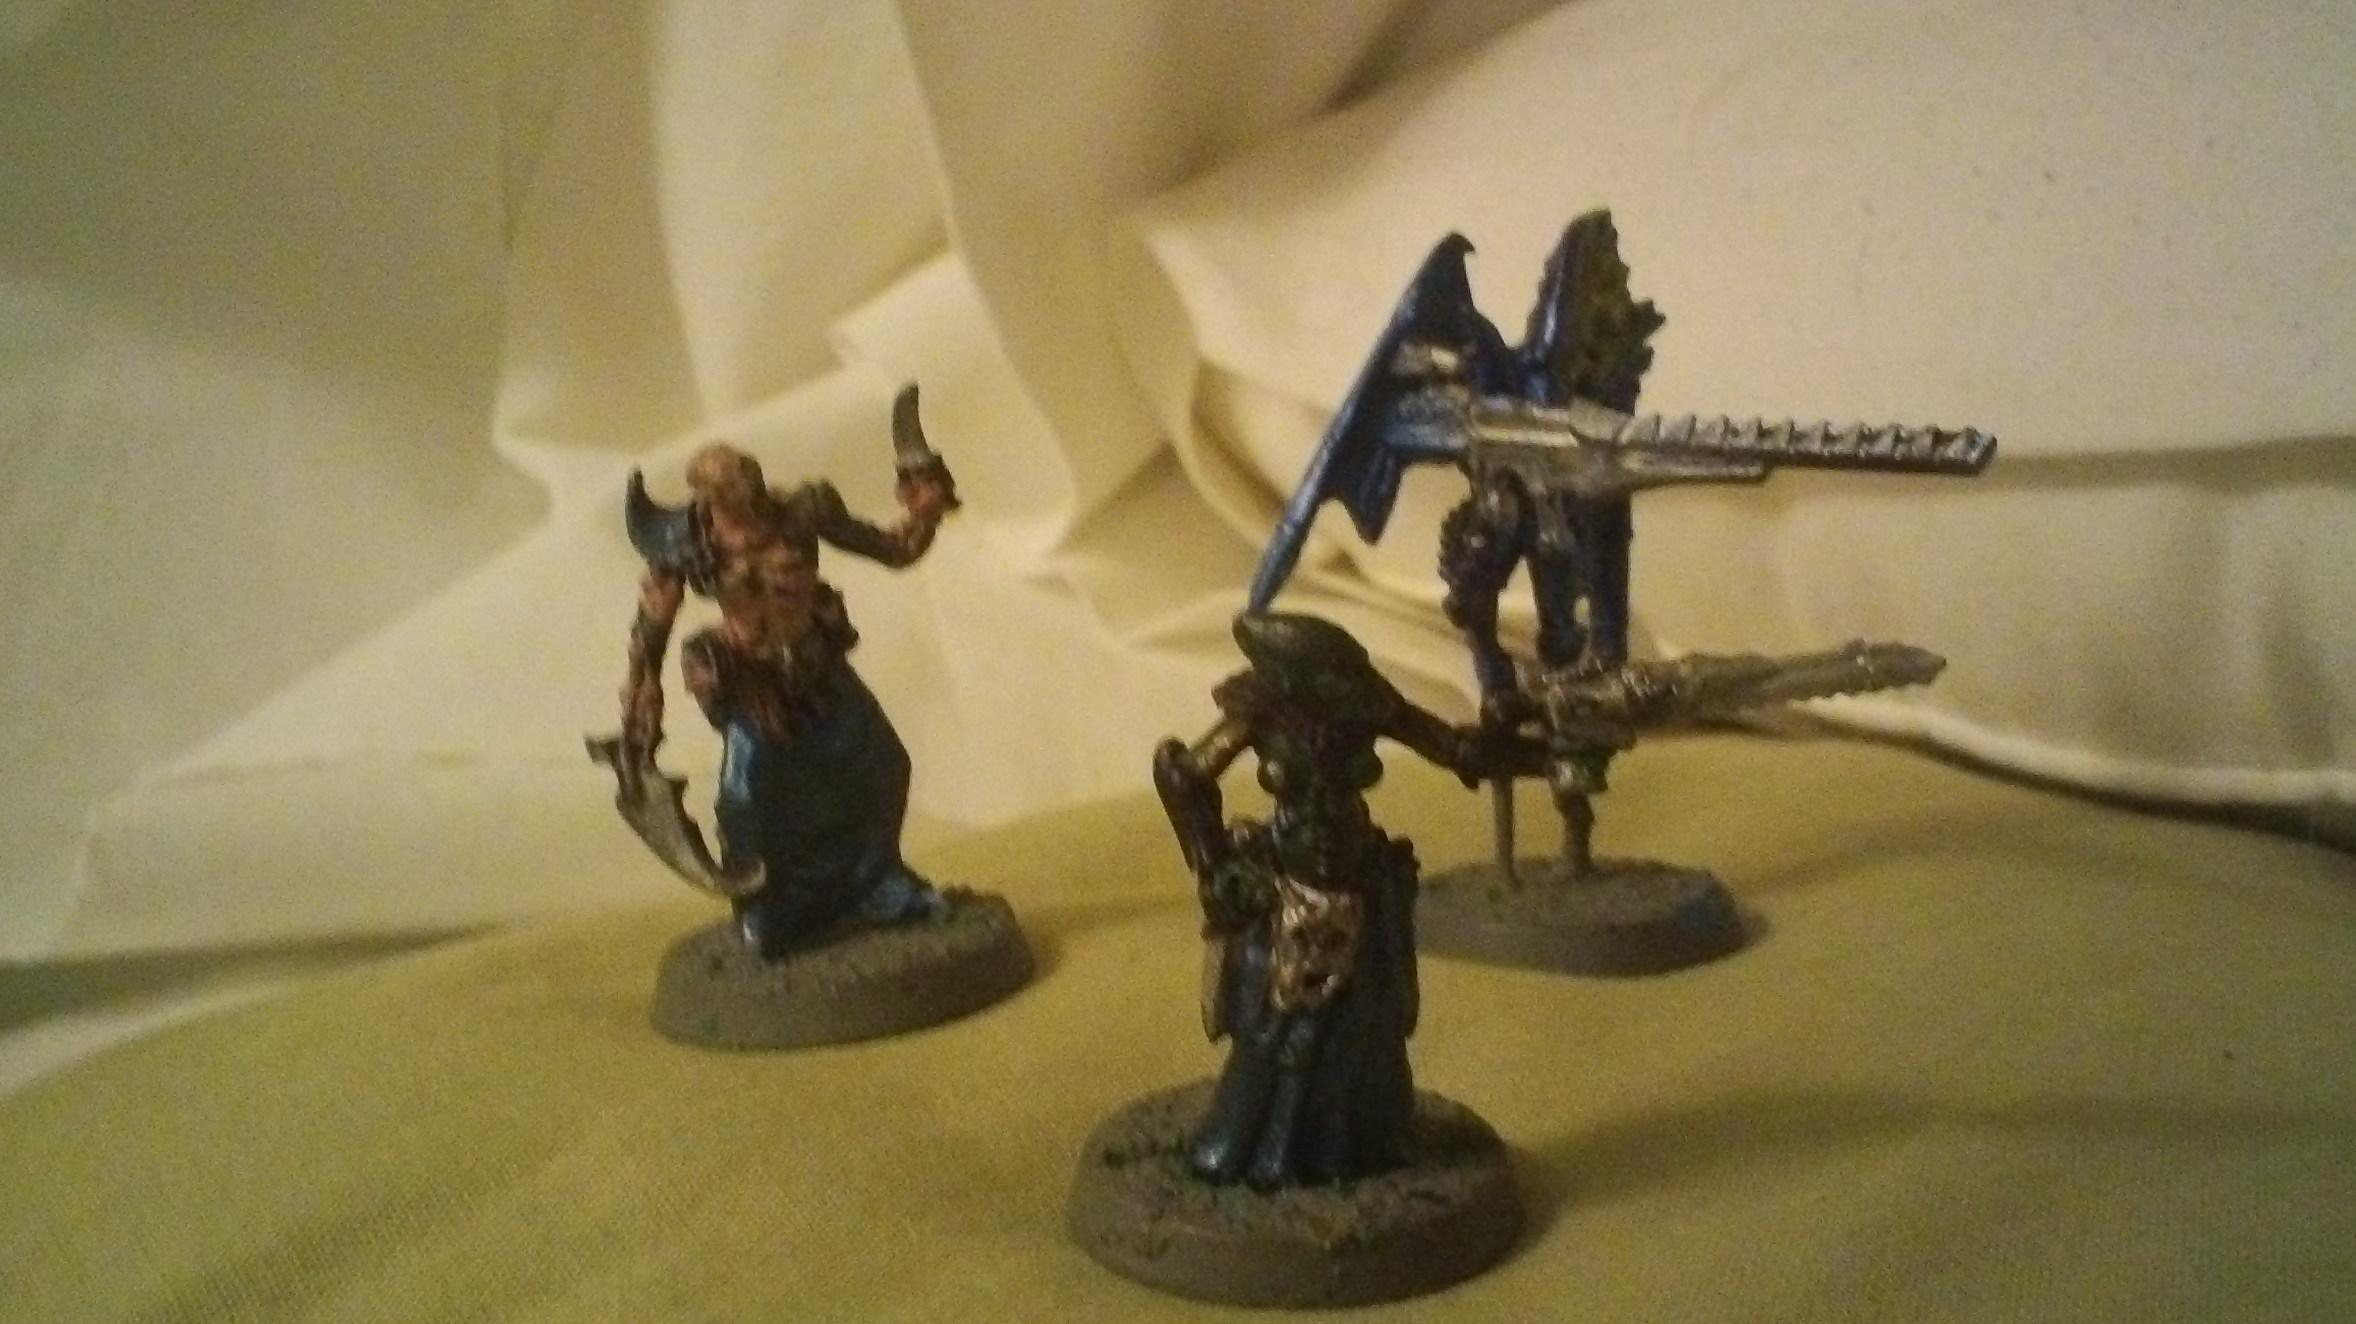 Scourges and others paintjob